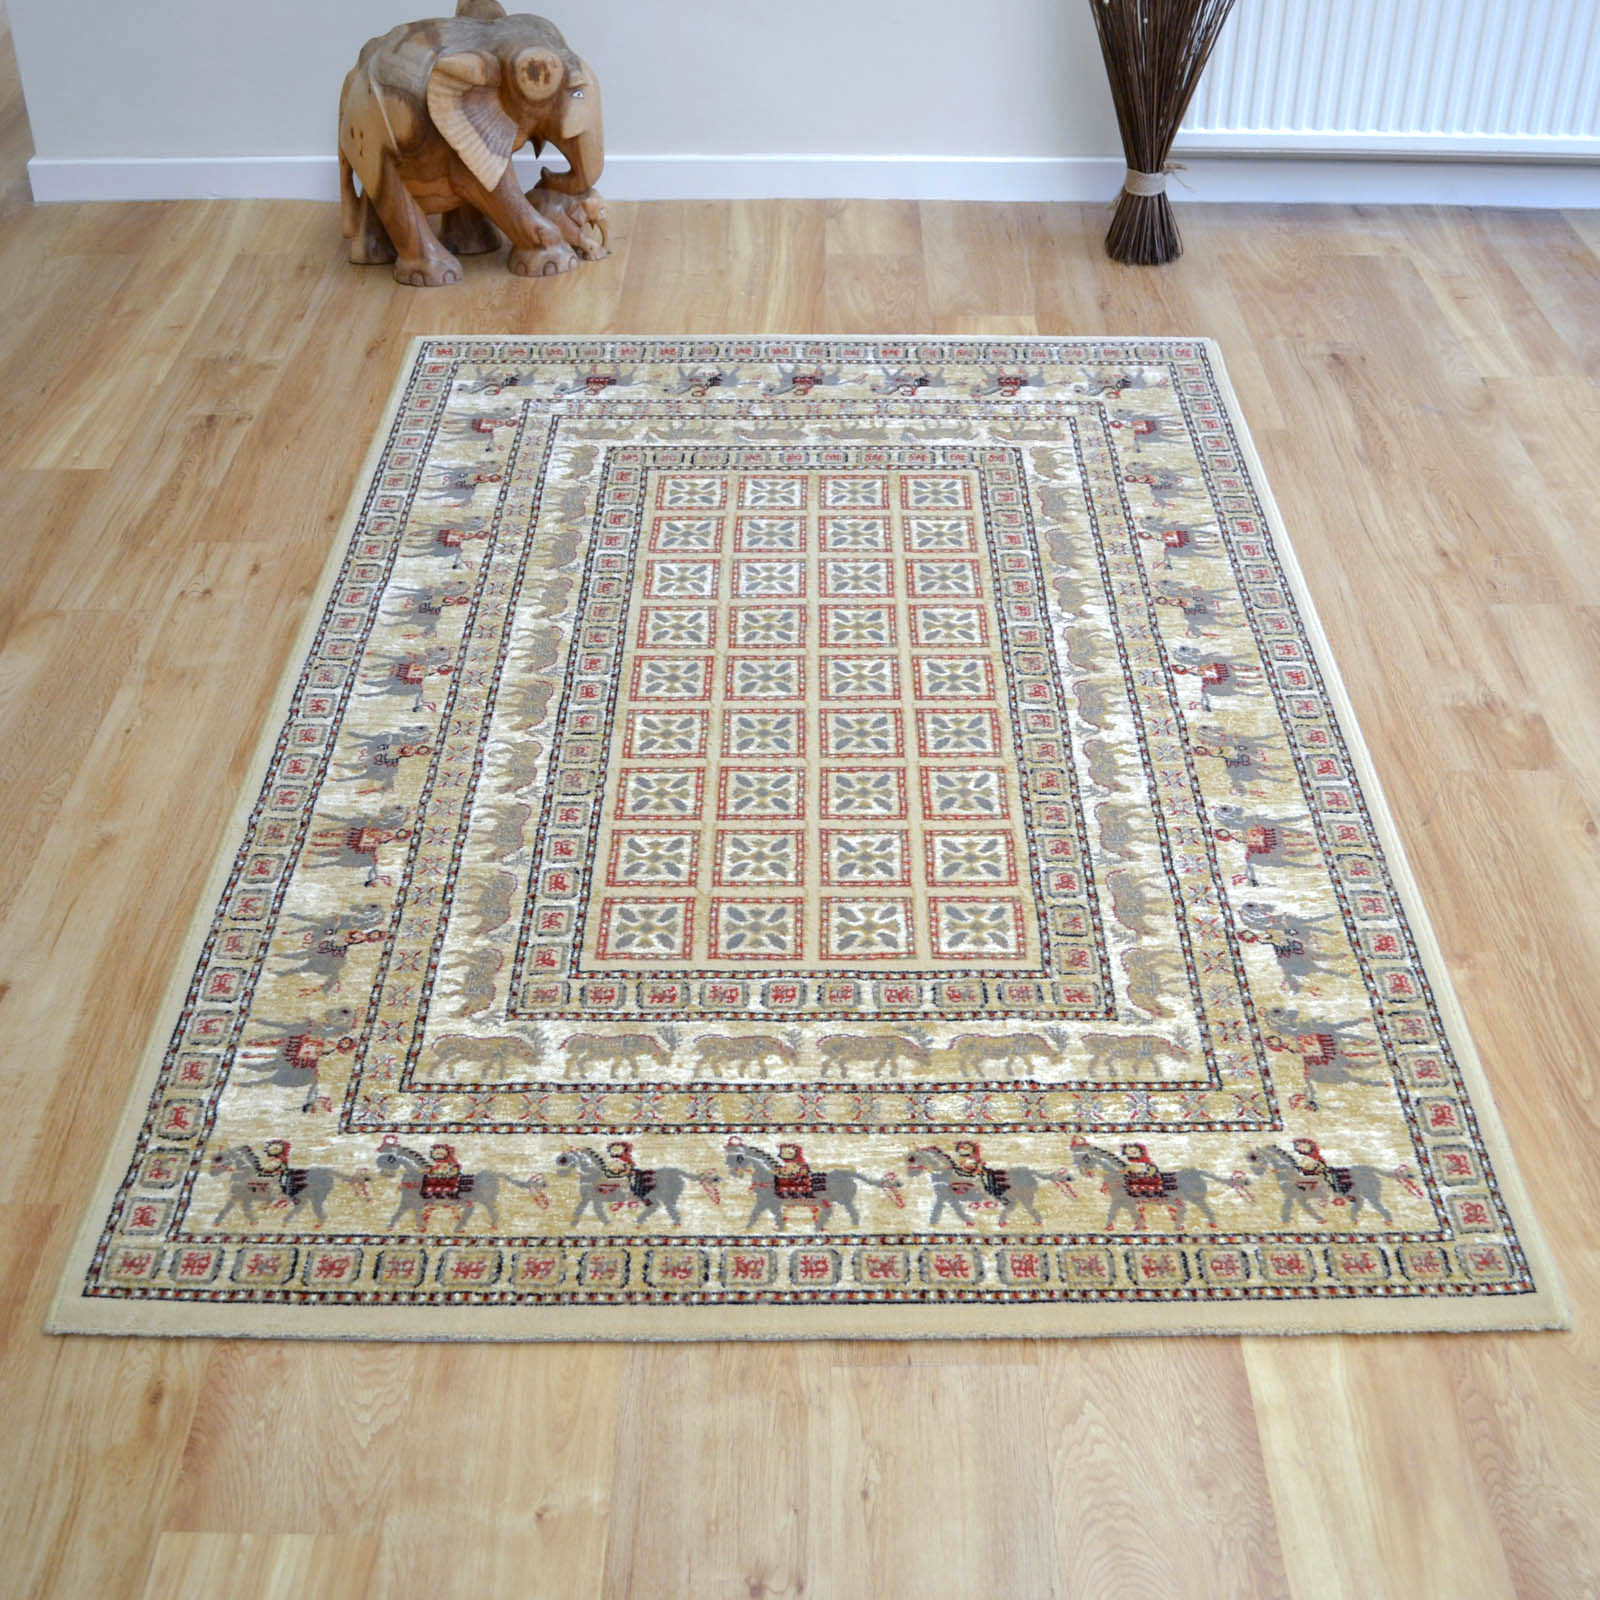 Noble Art Traditional Rugs 65106 190 in Pazyryk Beige